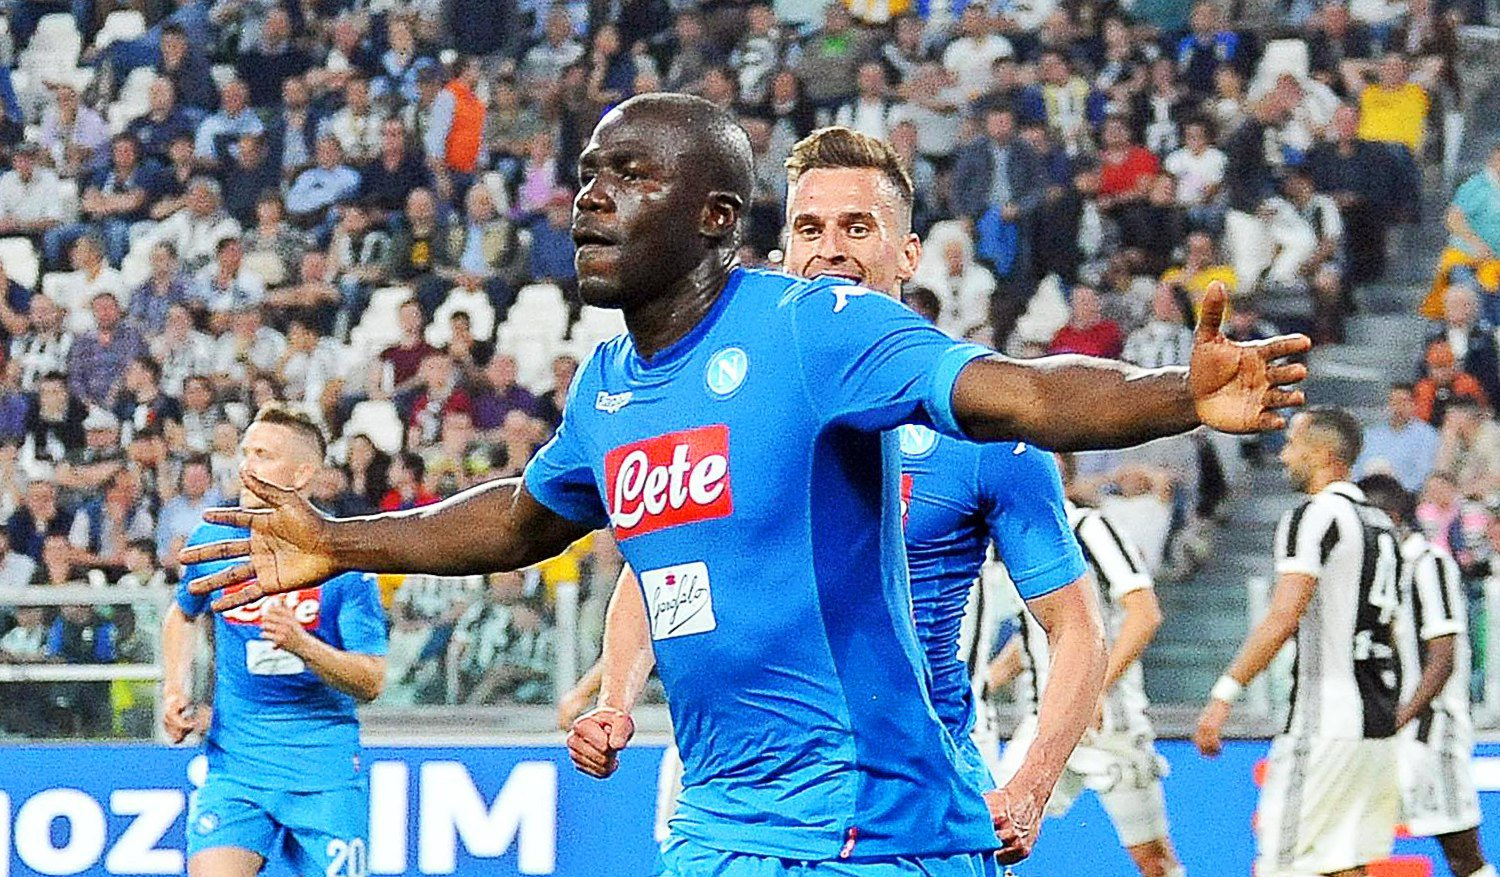 epa06686202 Napoli's Kalidou Koulibaly (front) celebrates after scoring the 1-0 lead during the Italian Serie A soccer match between Juventus FC and SSC Napoli in Turin, Italy, 22 April 2018. EPA/ALESSANDRO DI MARCO